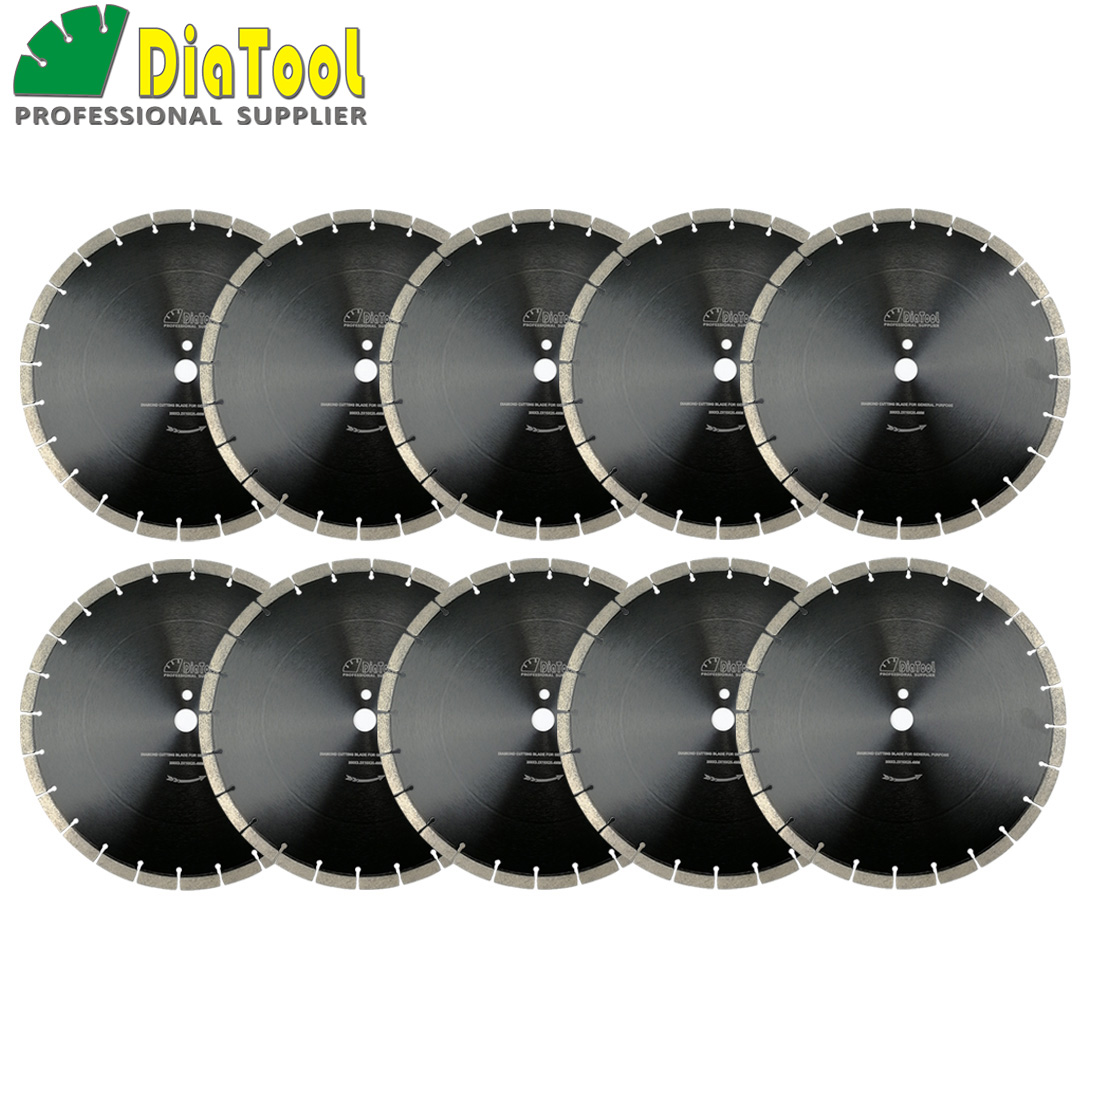 DIATOOL 10pcs/pk 14inch Professional segmented Sintered Diamond saw blade Dia 360mm Wet Cutting Disc for Concrete Block Paver 2 pcs super thin sintered diamond blade cutting disc for jade agate stone wet grinding with cooling water jgs031